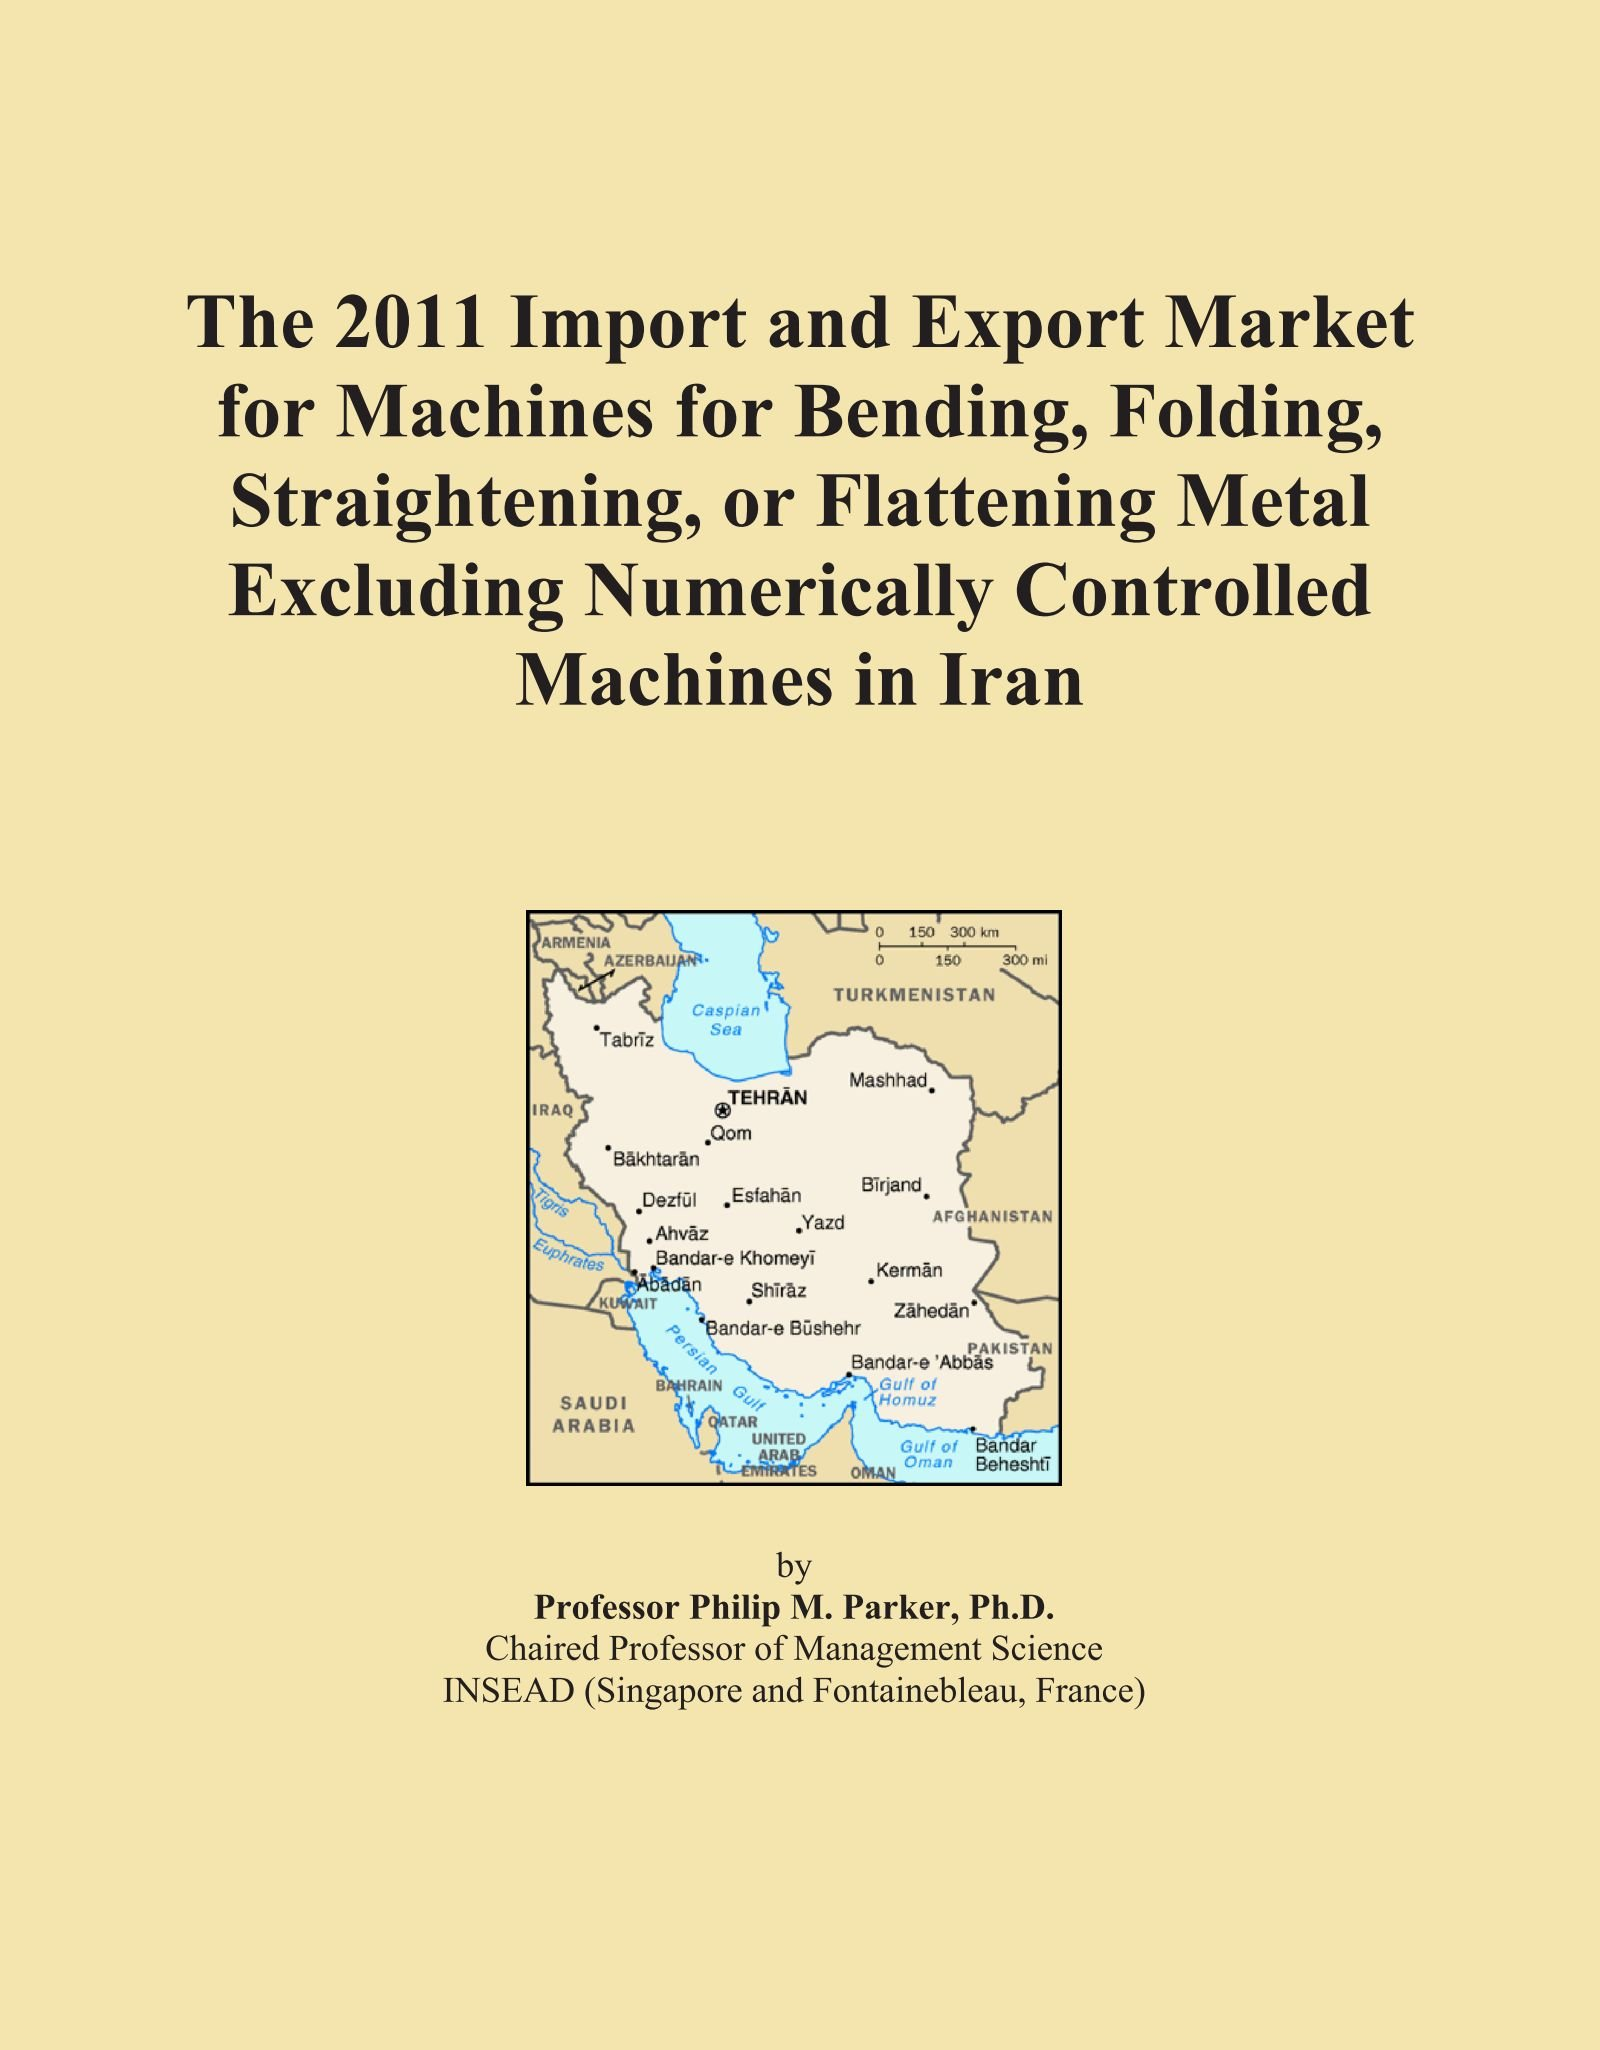 The 2011 Import and Export Market for Machines for Bending, Folding, Straightening, or Flattening Metal Excluding Numerically Controlled Machines in Iran pdf